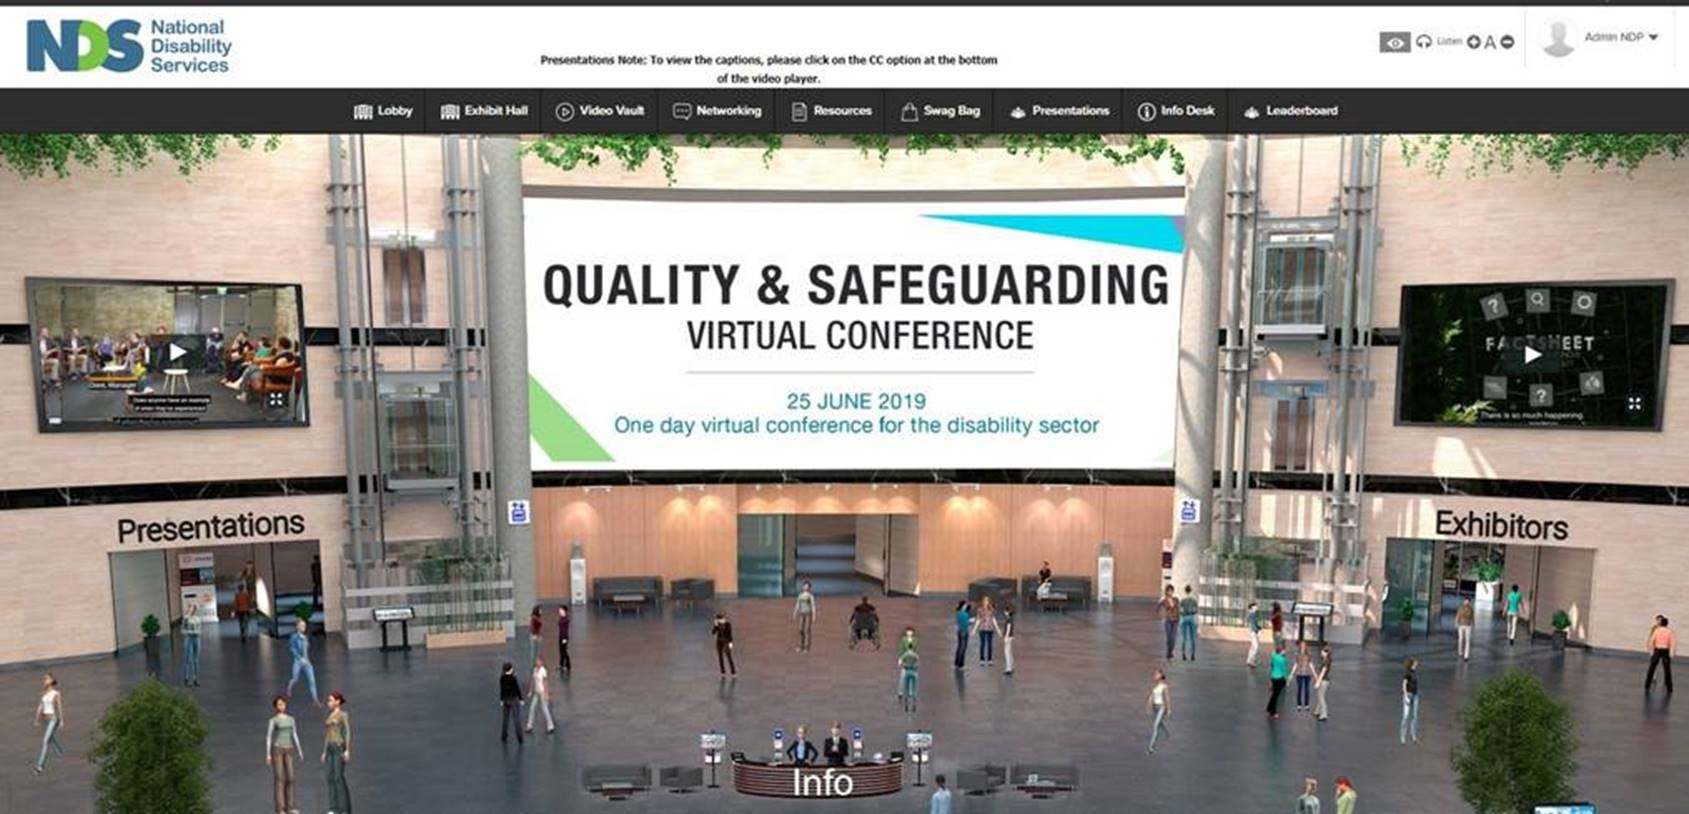 NDP Quality and Safeguarding Virtual Conference Page